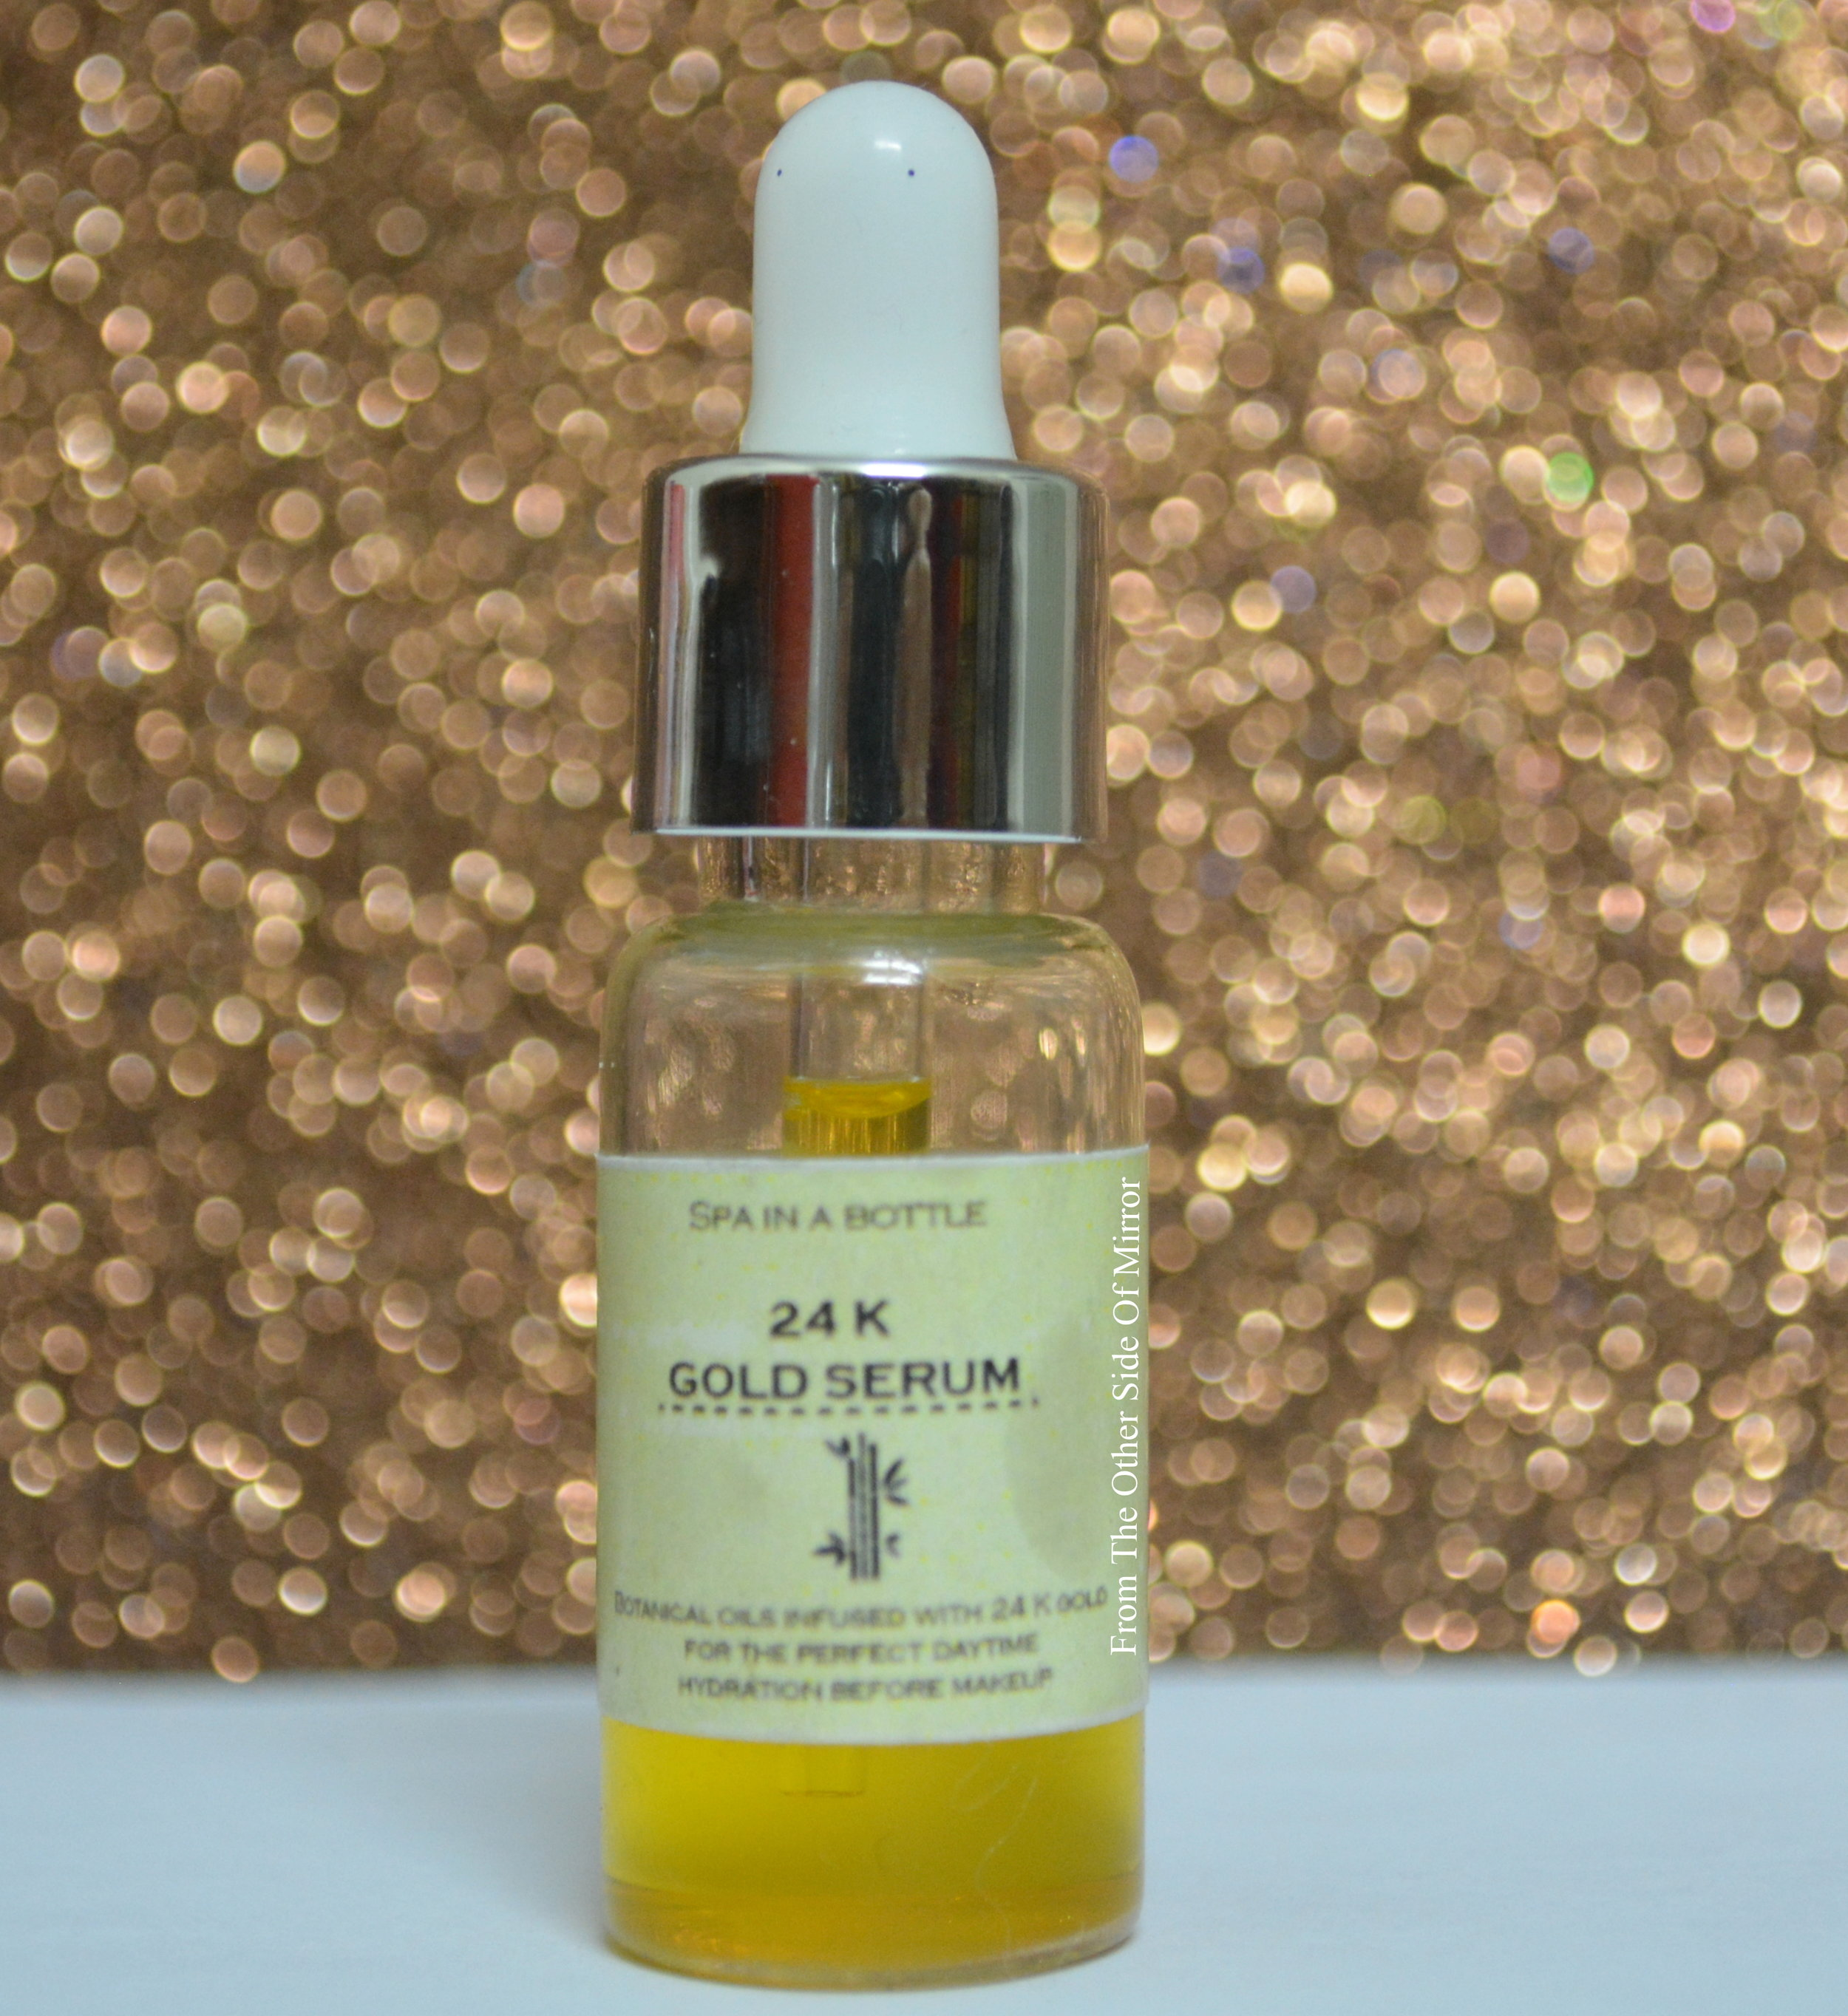 Spa in a bottle -24 k Gold Serum